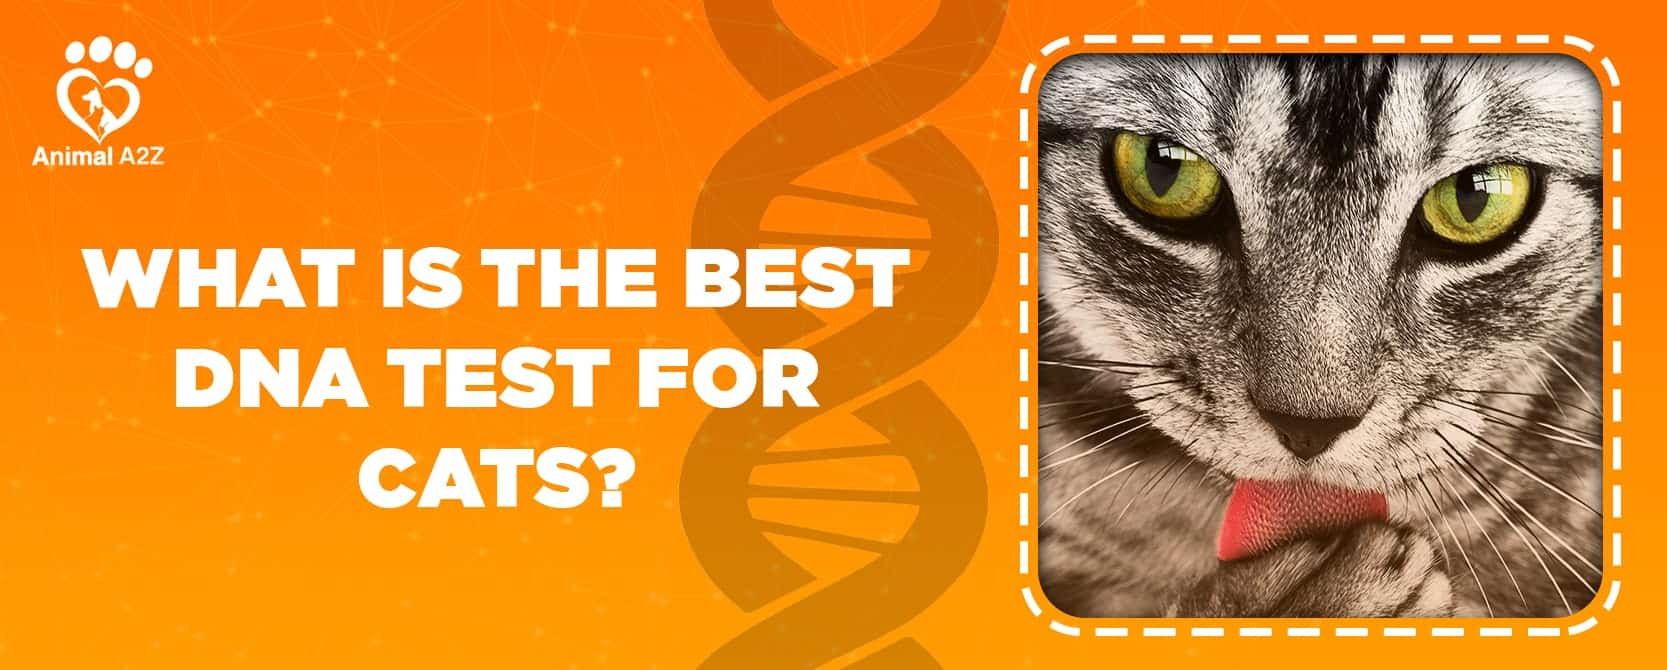 What is the best dna test for cats